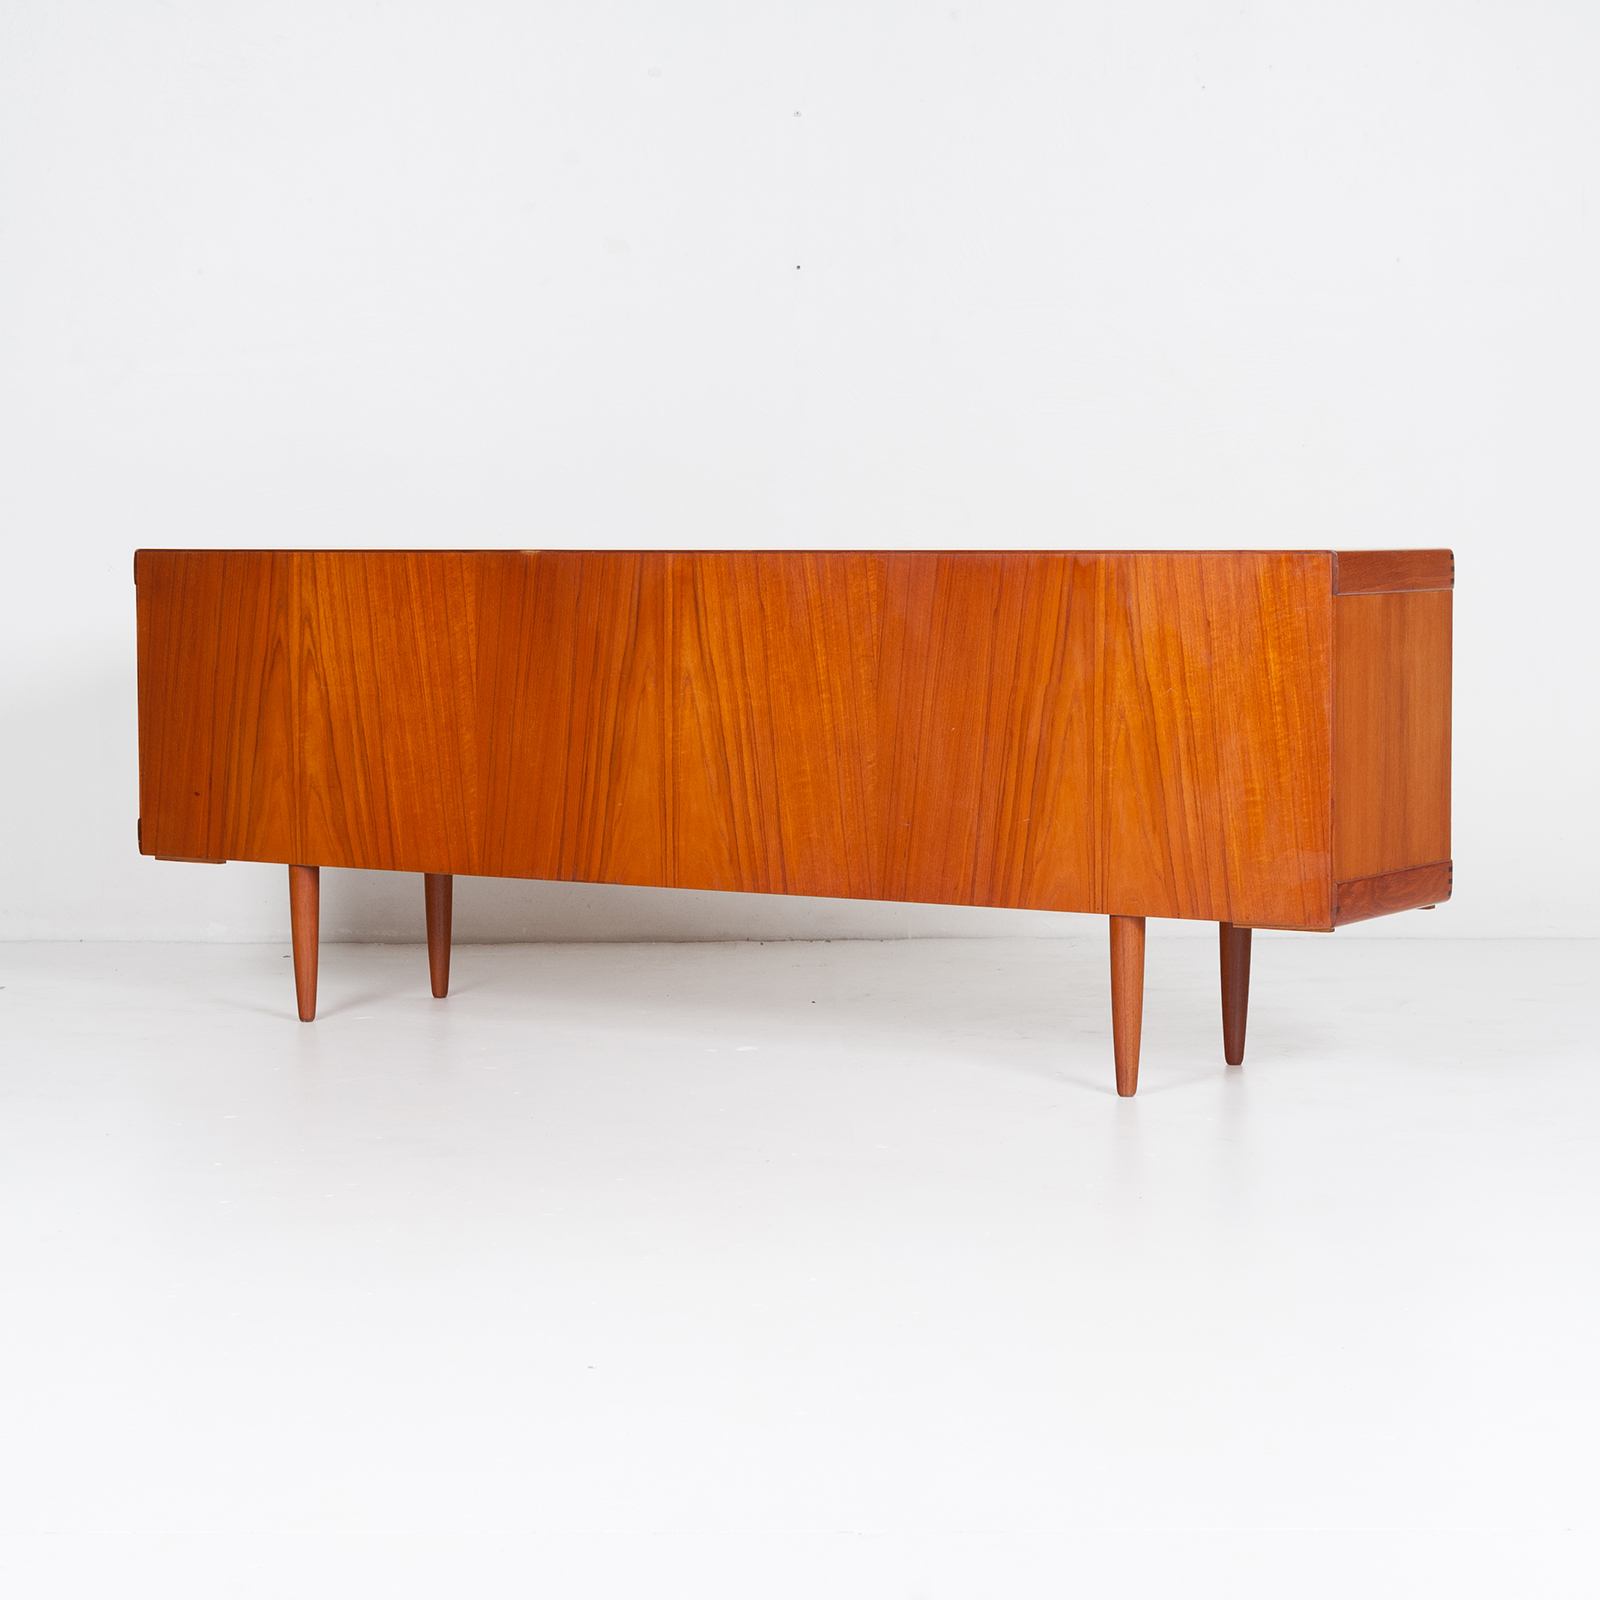 Sideboard By H W Klein In Teak For Bramin, 1960s, Denmark98